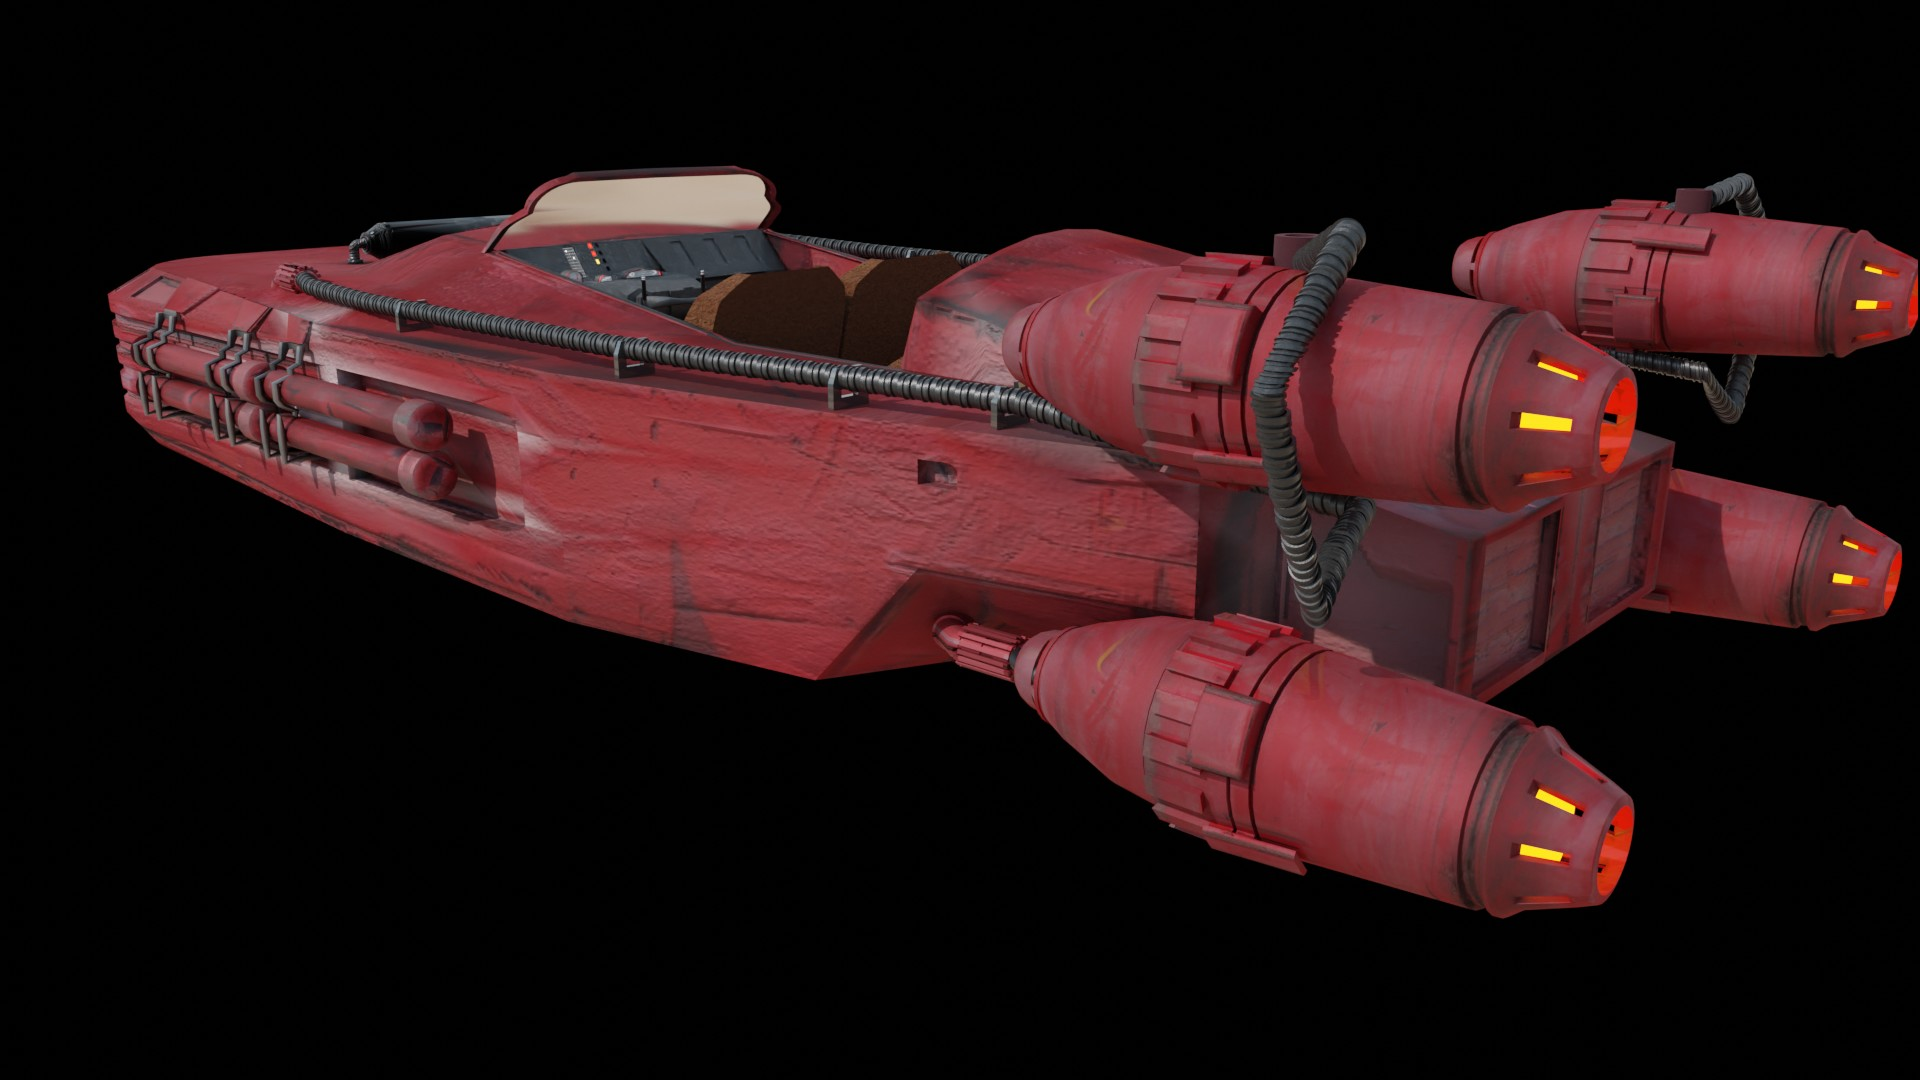 speeder star wars fan art preview image 1